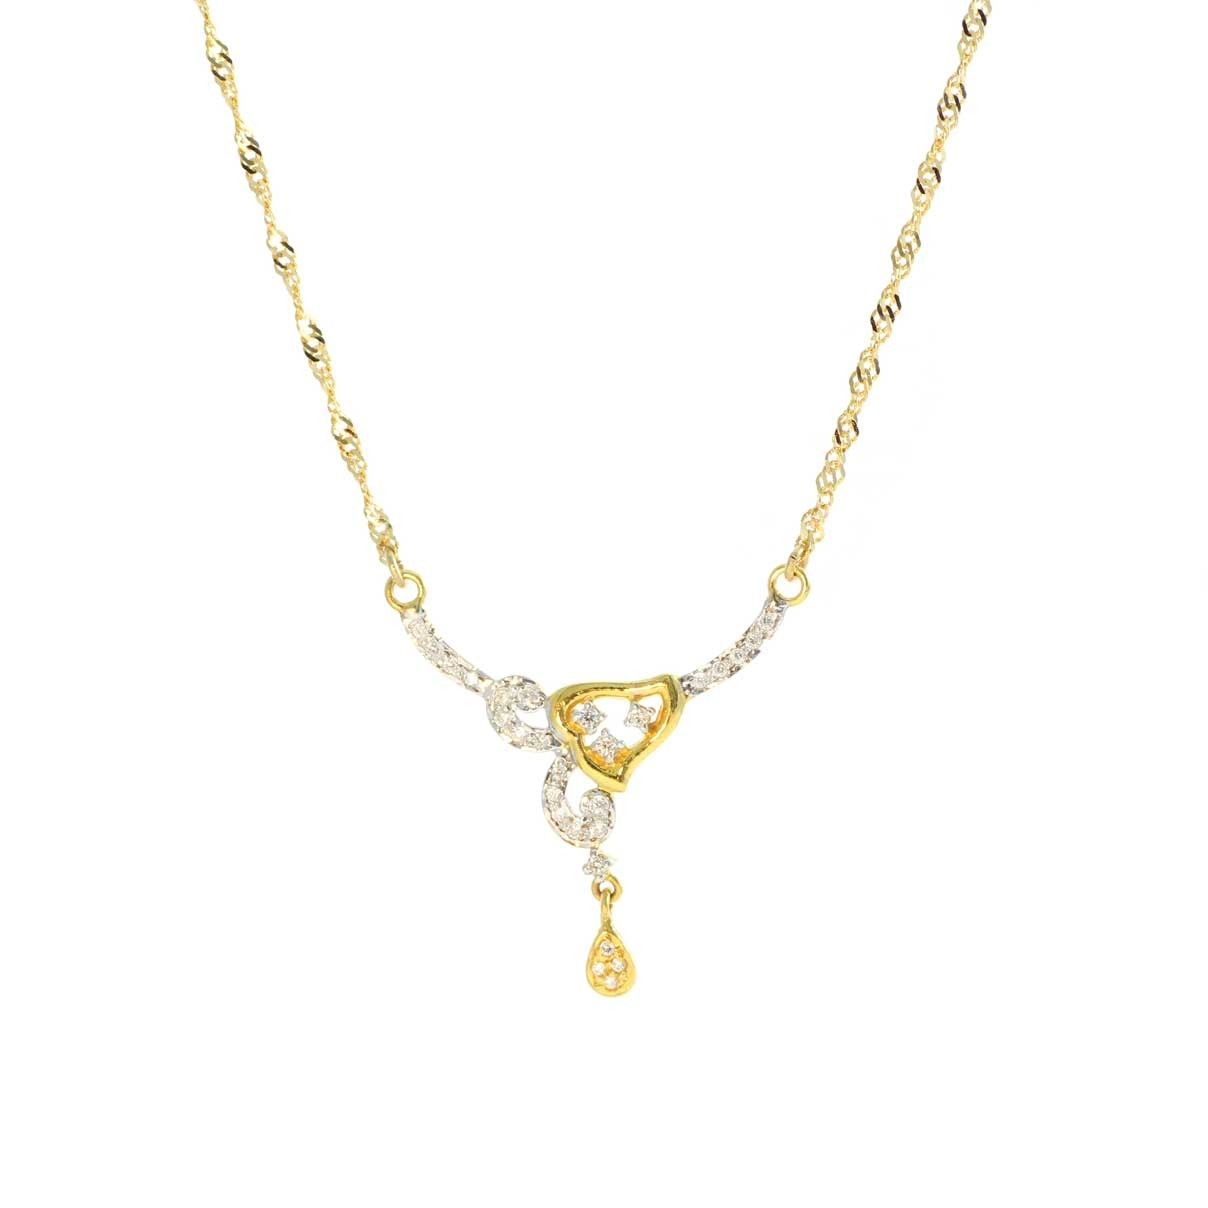 Chain with fixed pendant detail made in 22 carat gold chain chain with fixed pendant detail made in 22 carat gold chain aloadofball Images